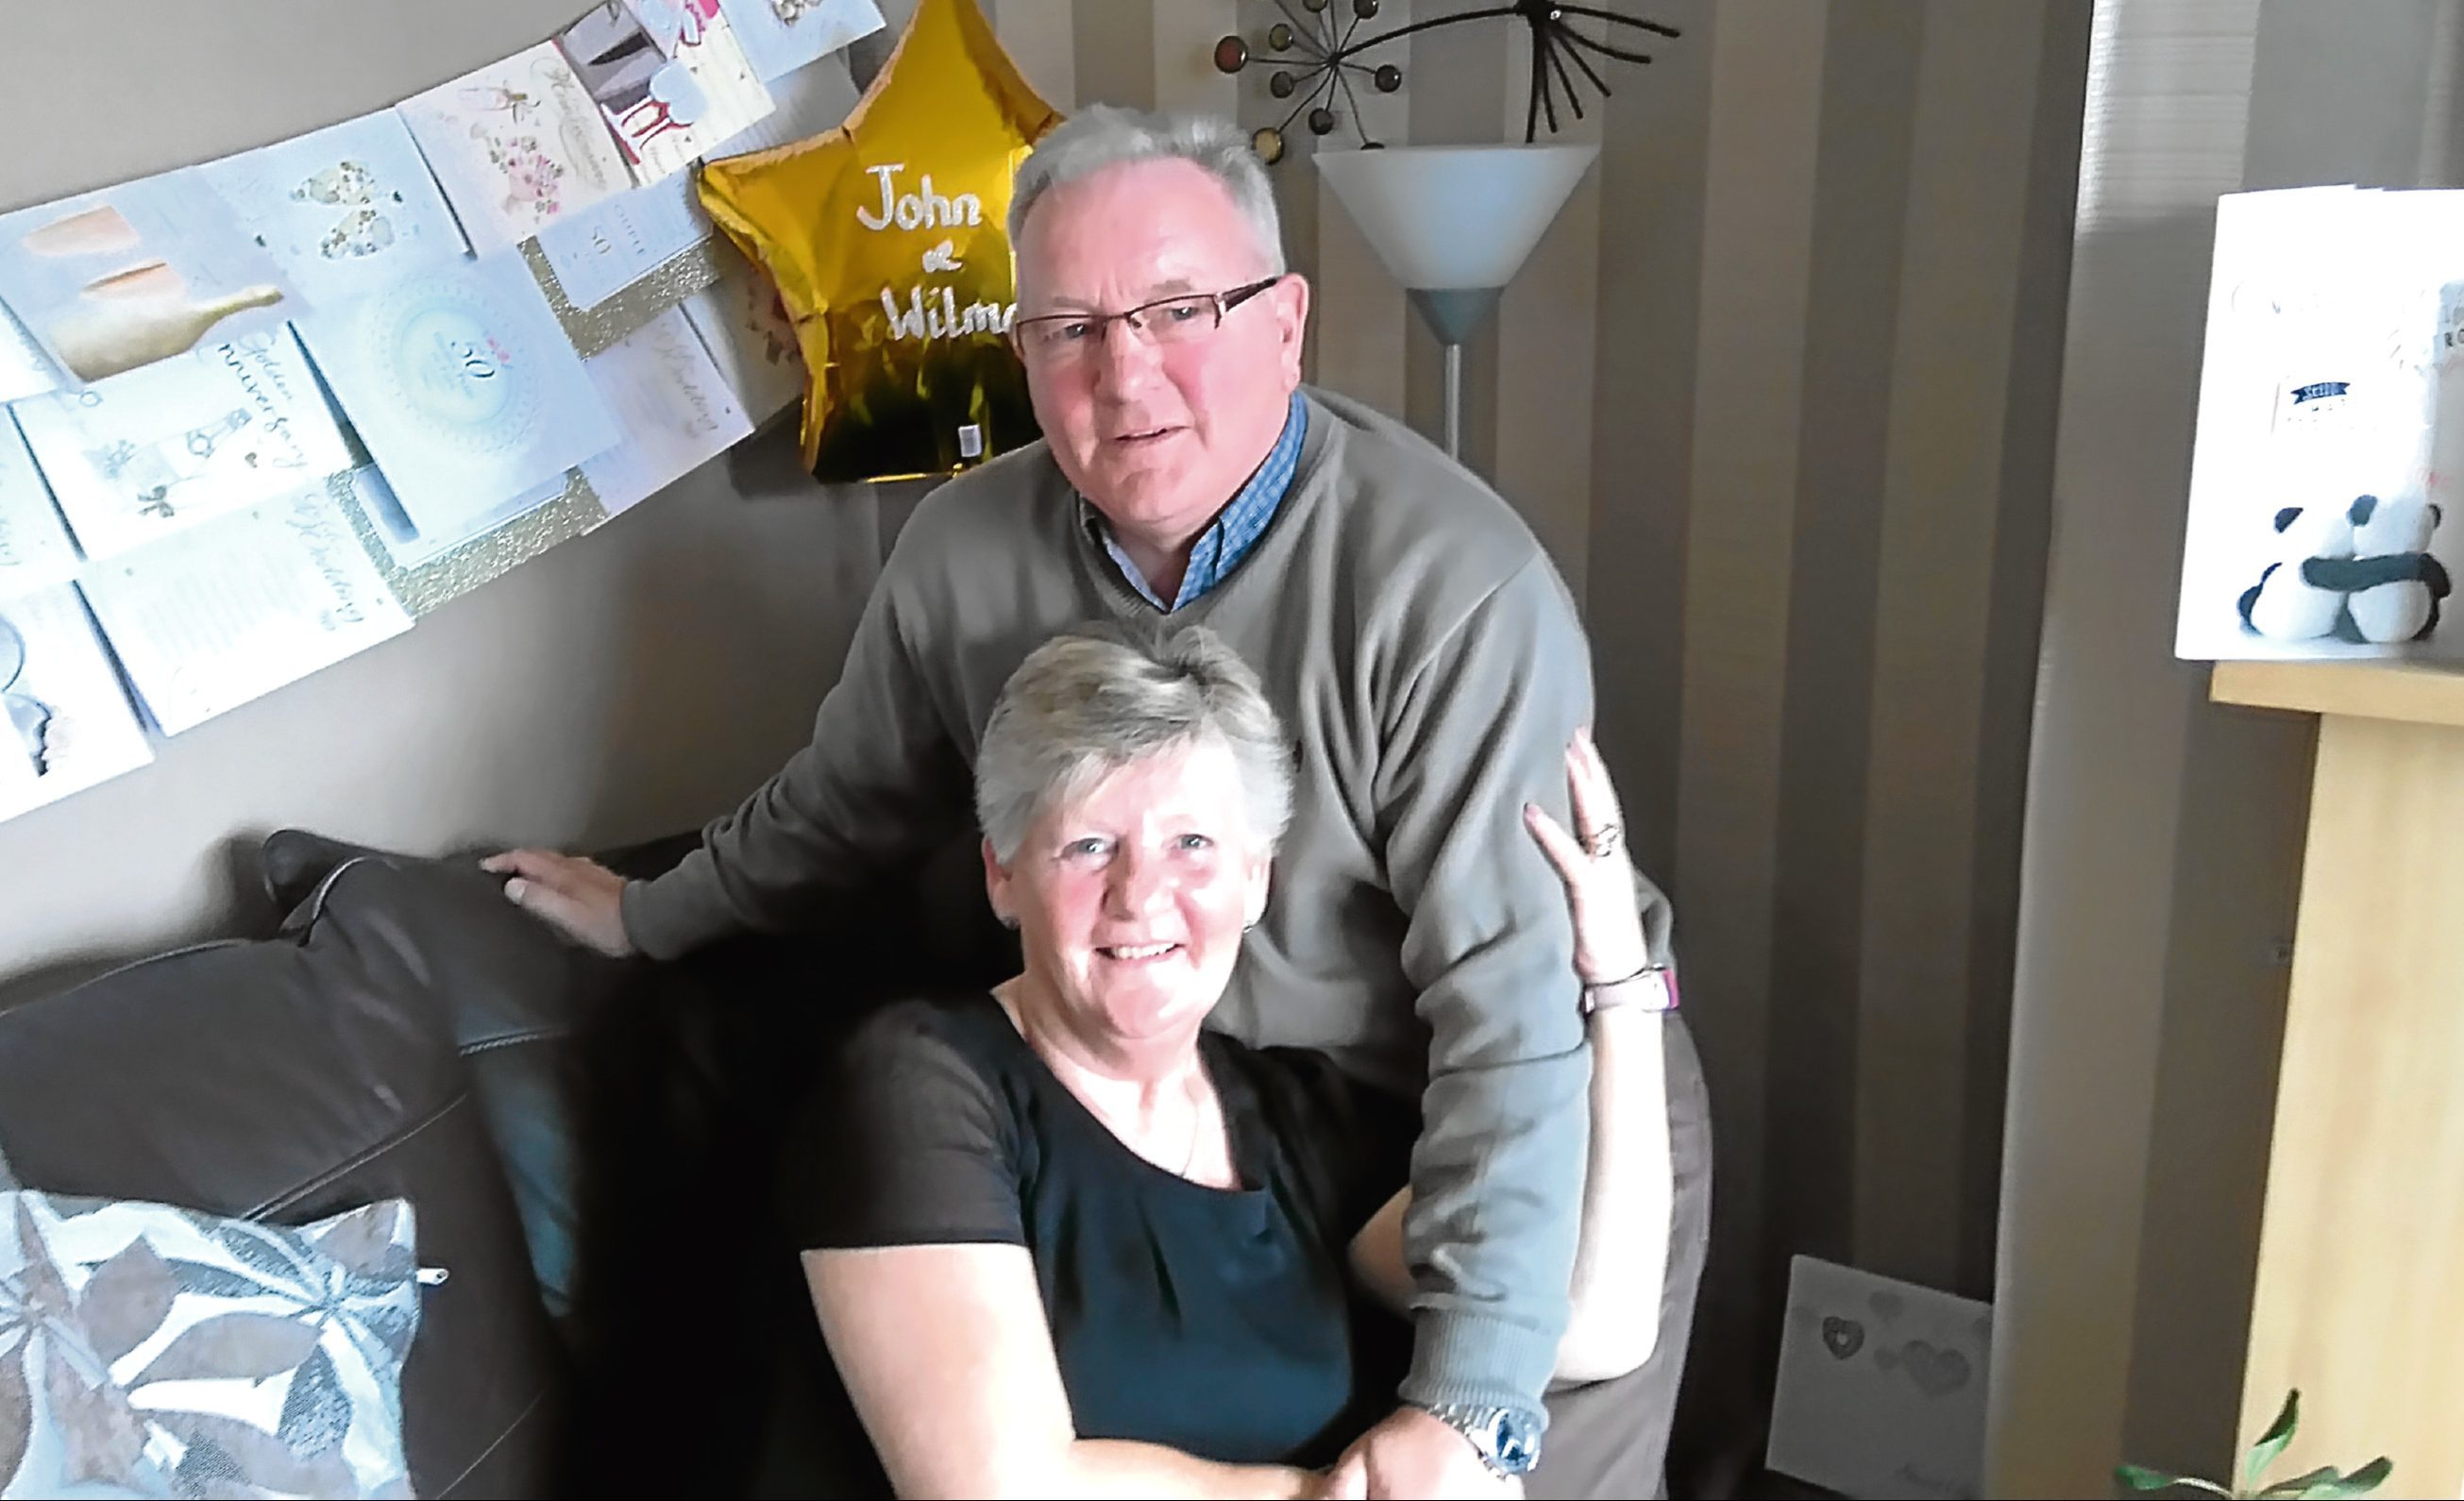 John and Wilma Campbell are celebrating their 50th wedding anniversary